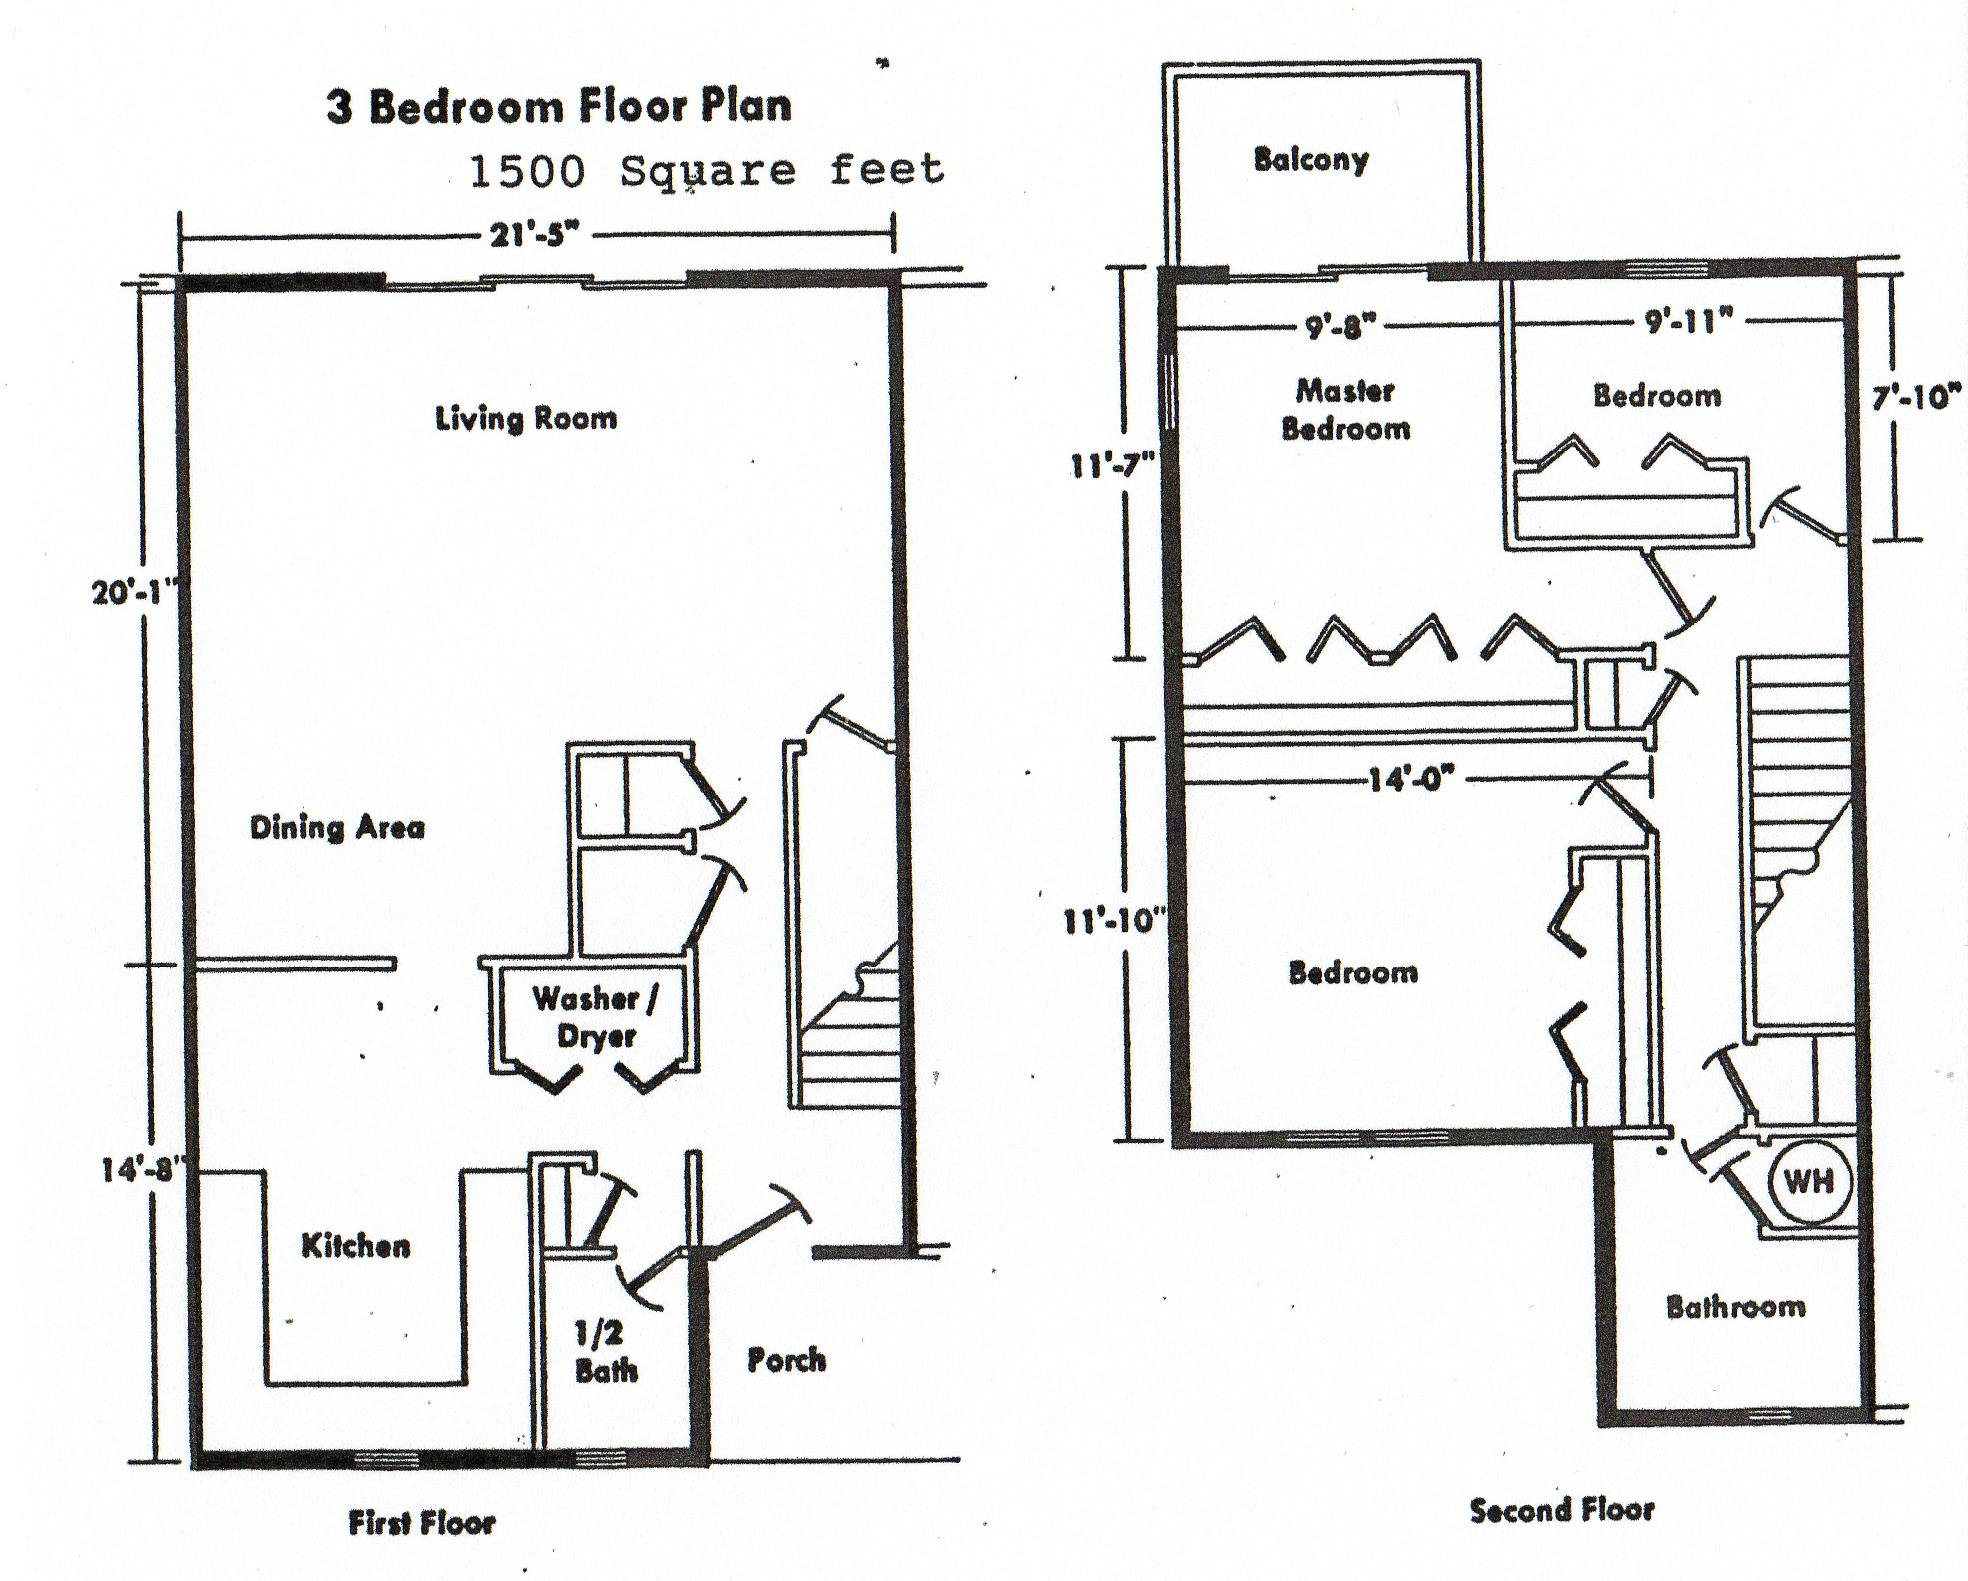 10 bedroom house floor plans designs mansion bedrooms two for 10 bedroom mansion floor plans